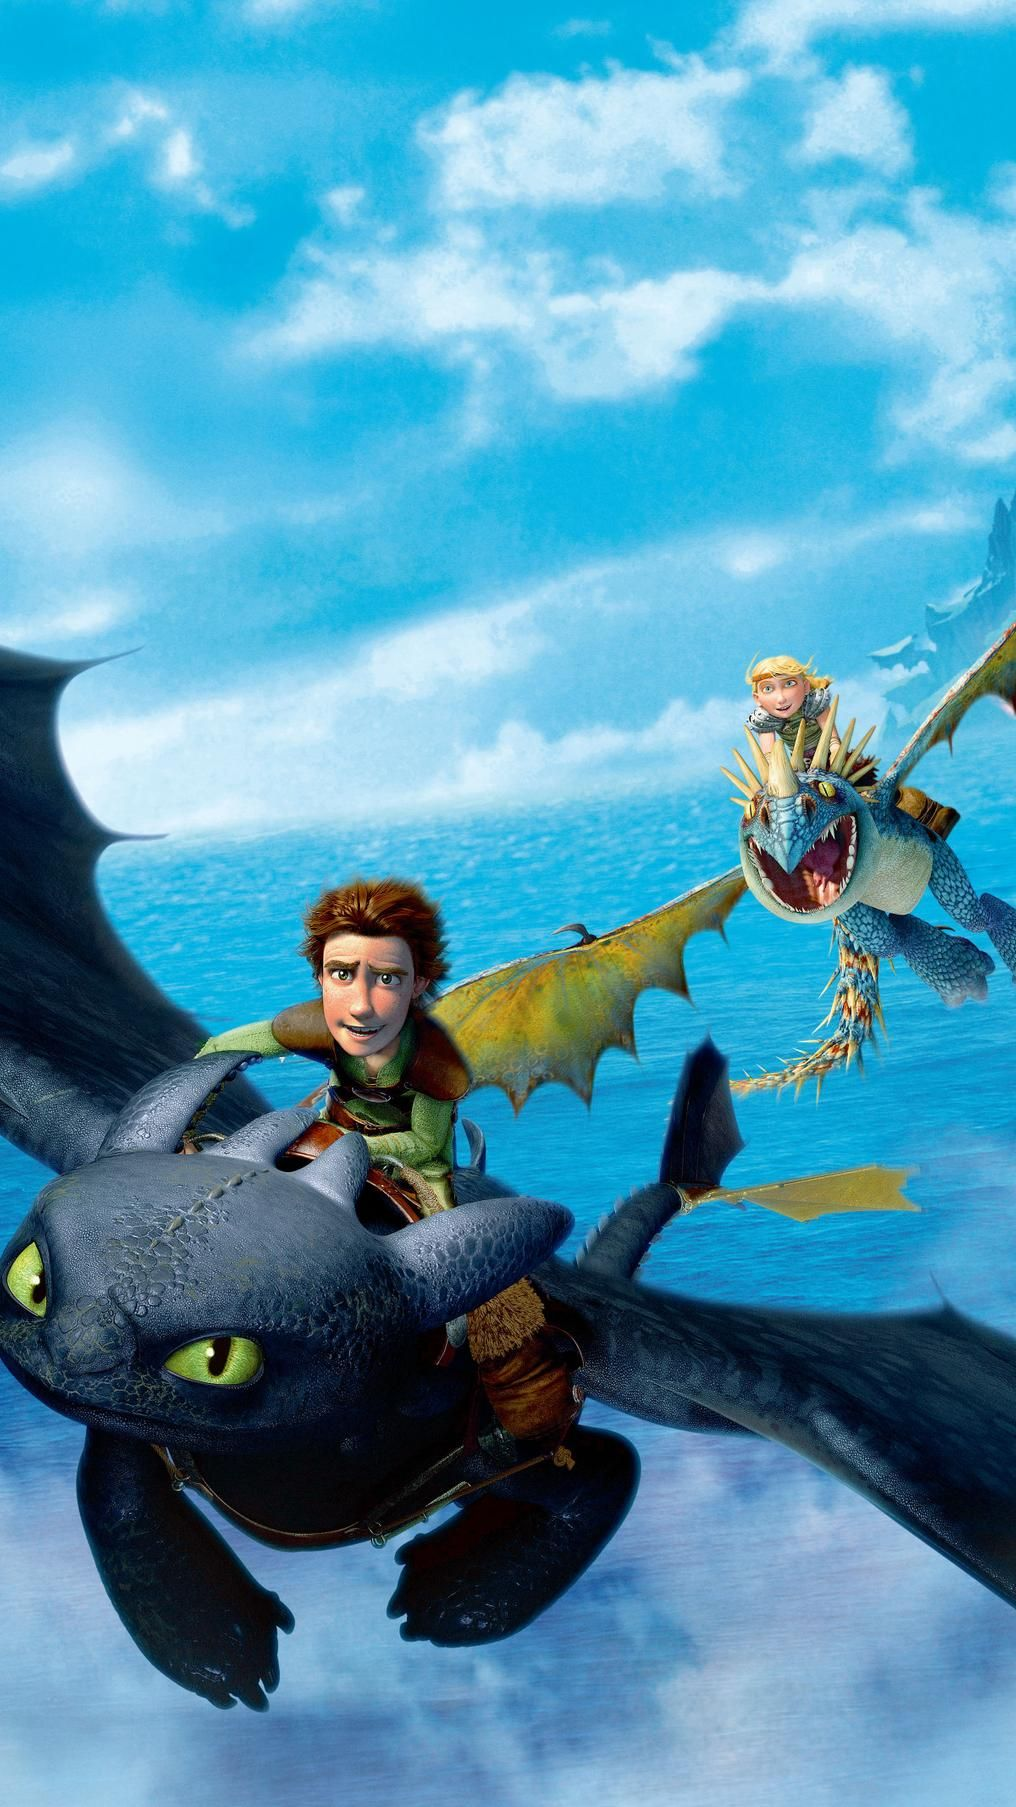 How To Train Your Dragon 2 2014 Phone Wallpaper Moviemania How Train Your Dragon How To Train Your Dragon How To Train Dragon